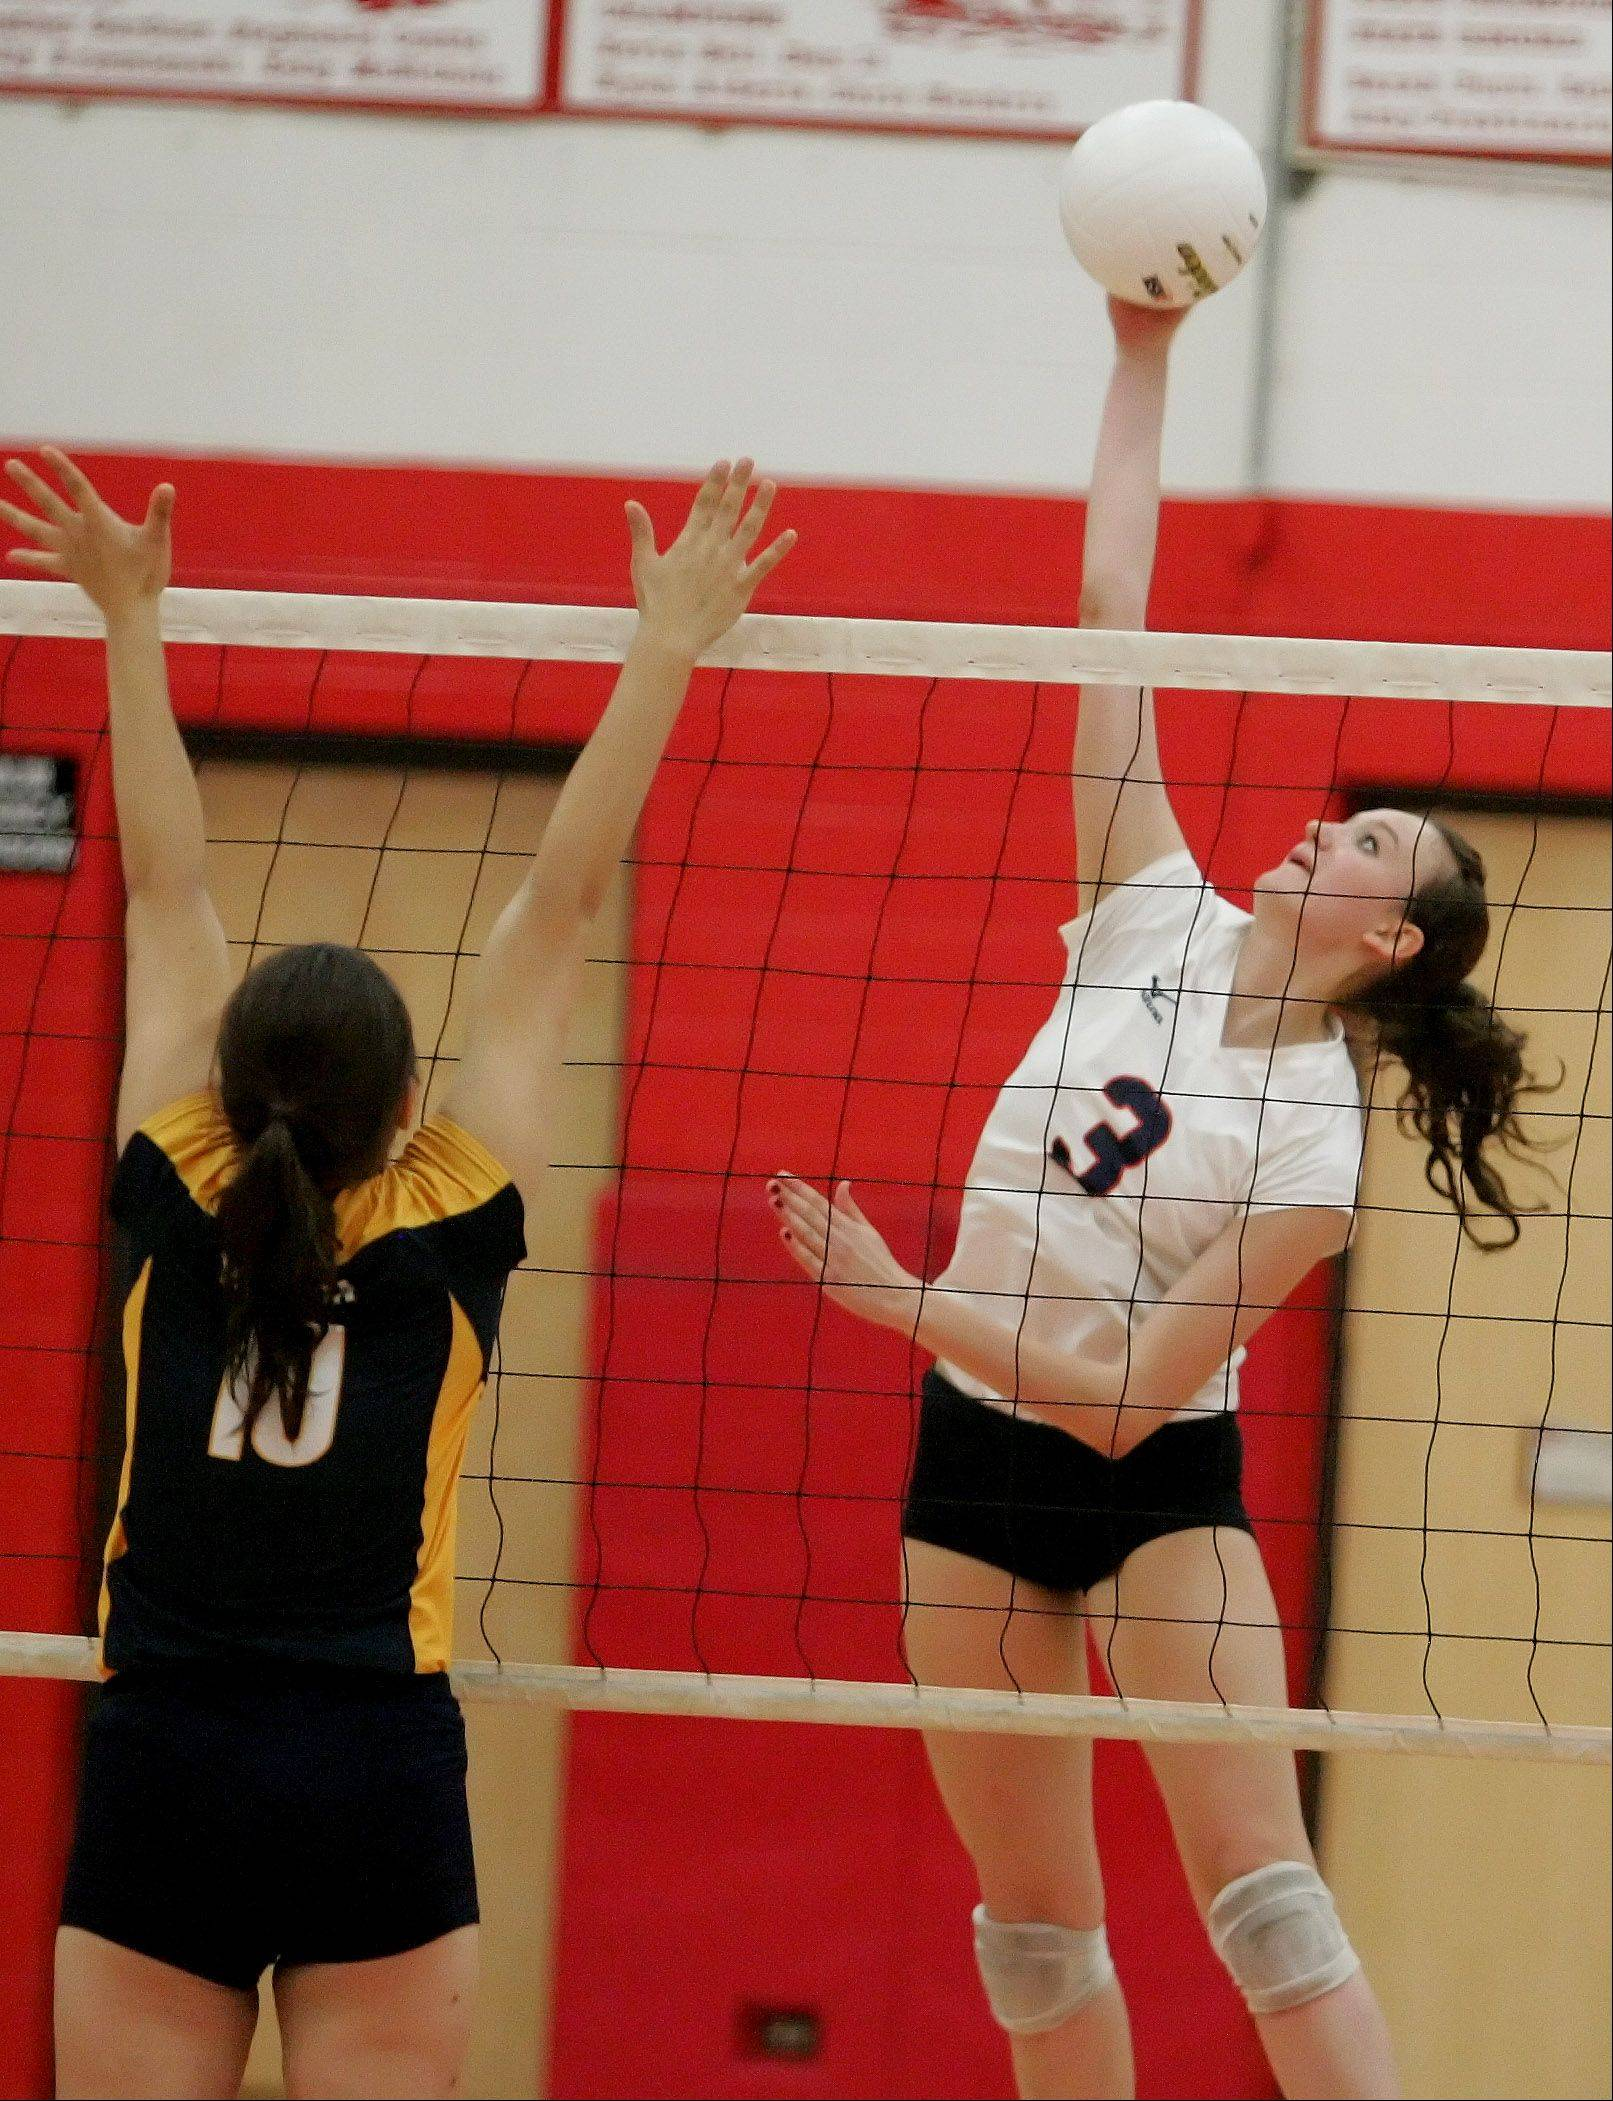 Angela Jurek of Naperville Northspikes the ball as Stephanie Vas, left, of Neuqua Valley defends in Class 4A girls volleyball regional semifinals at Naperville Central on Monday.